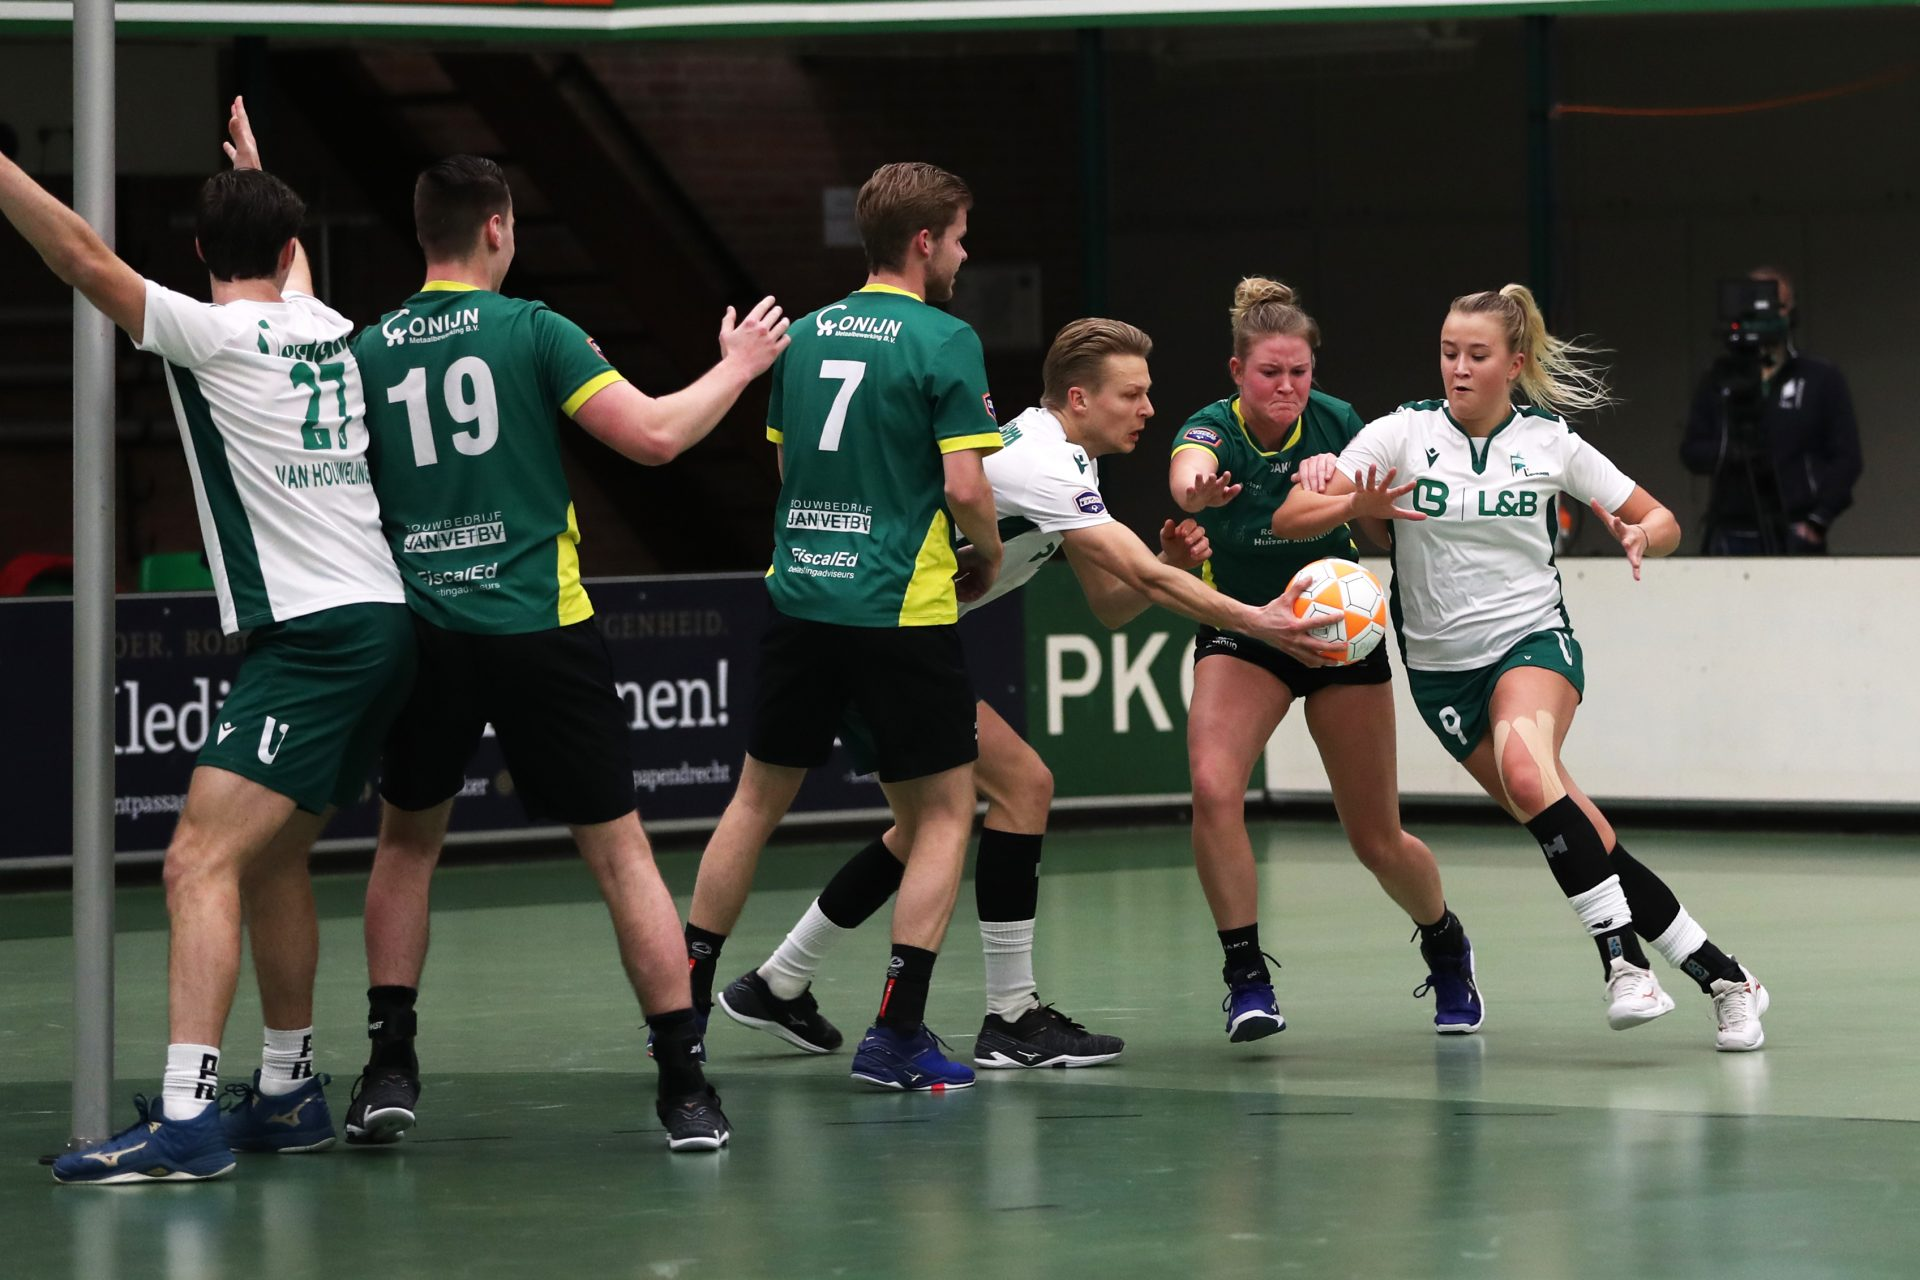 Korfbal League in de media #4